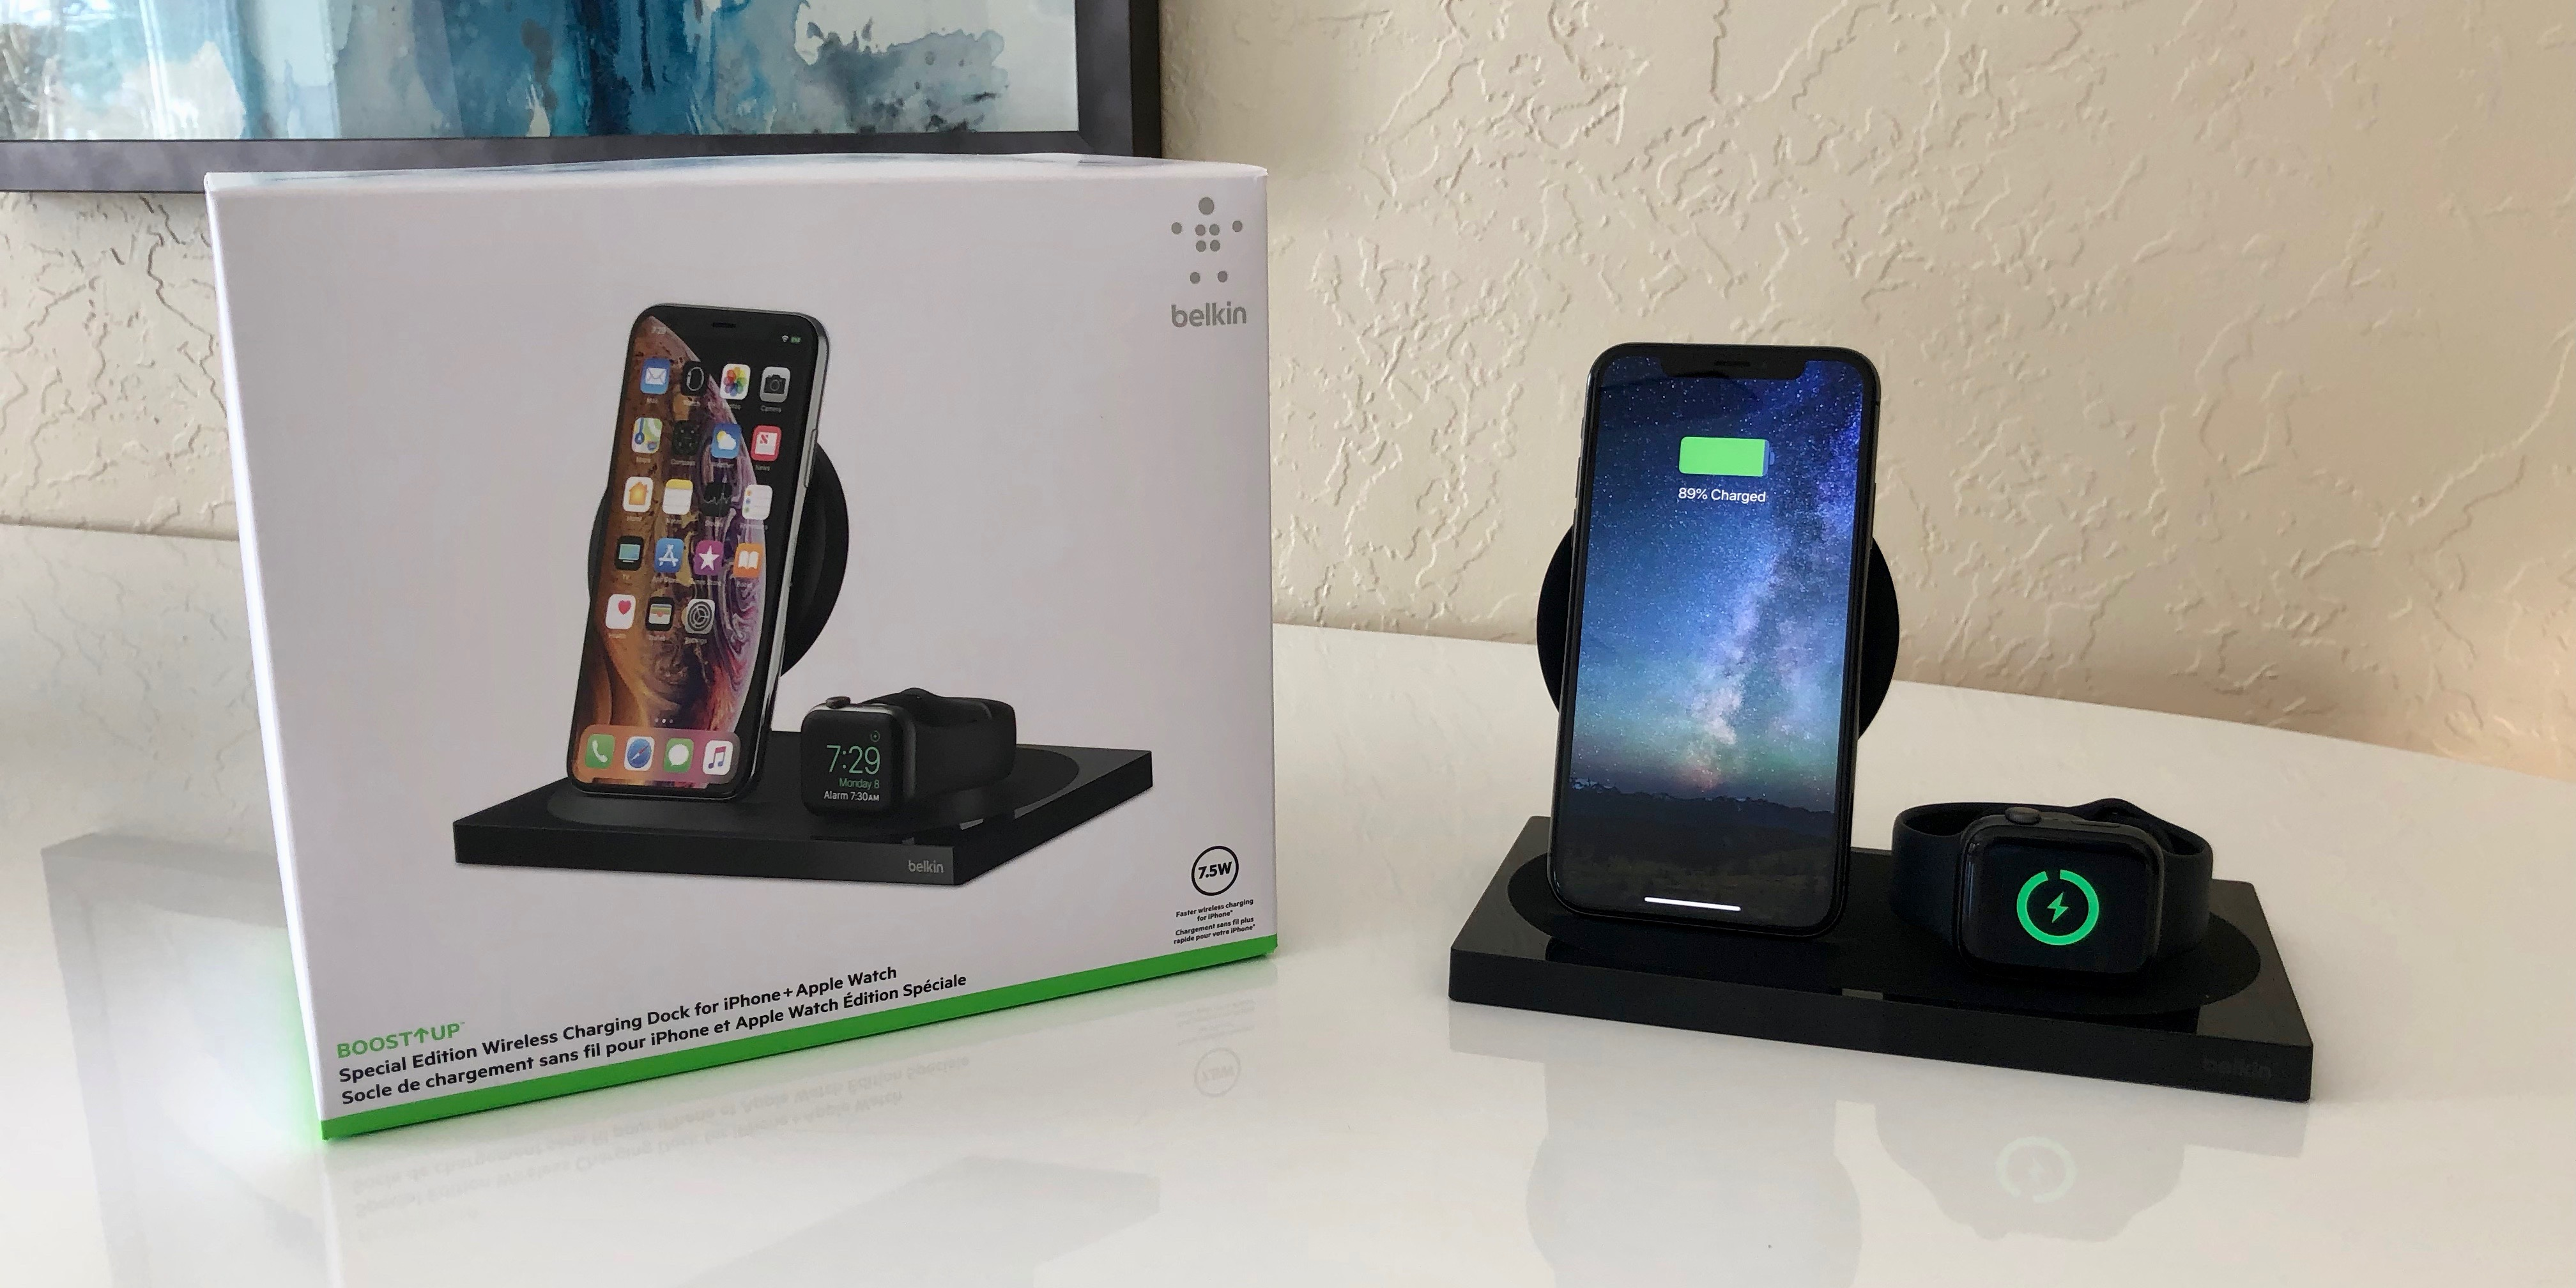 Hands-on with a great AirPower alternative from Belkin